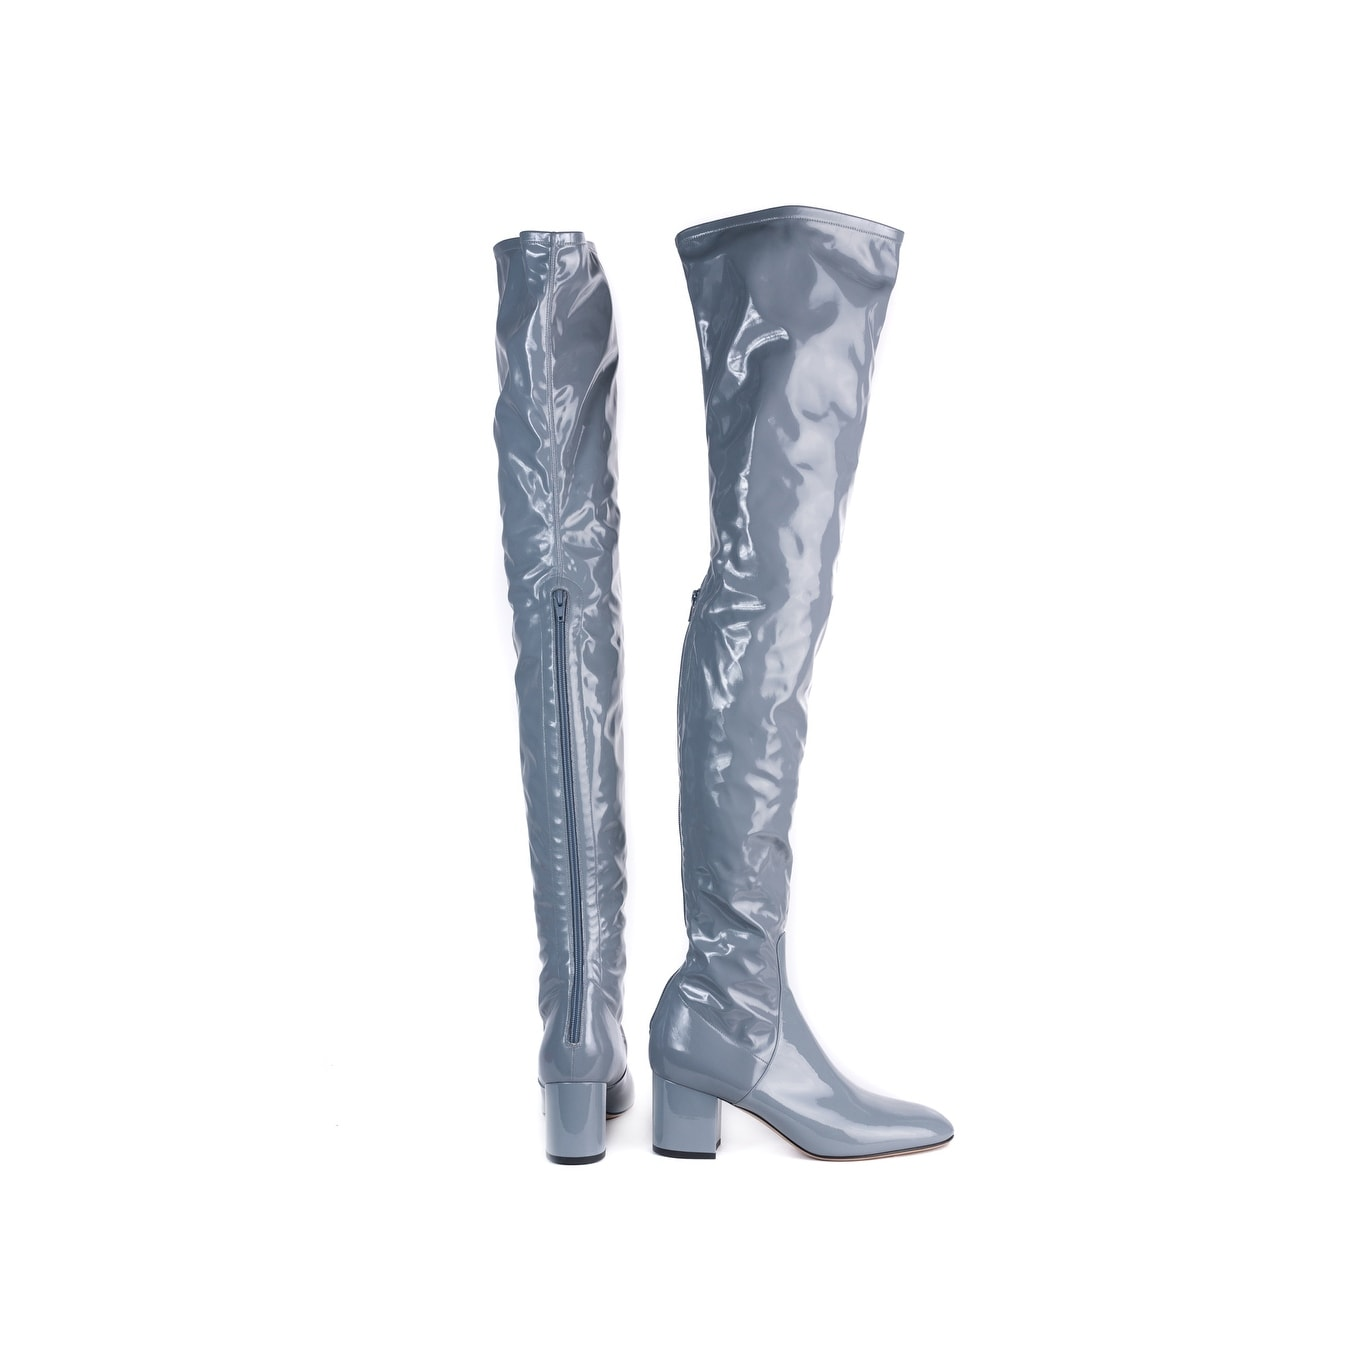 8facc004186 Shop Valentino Women Grey Stretch Patent Over the Knee High Boots - Free  Shipping Today - Overstock - 22995239